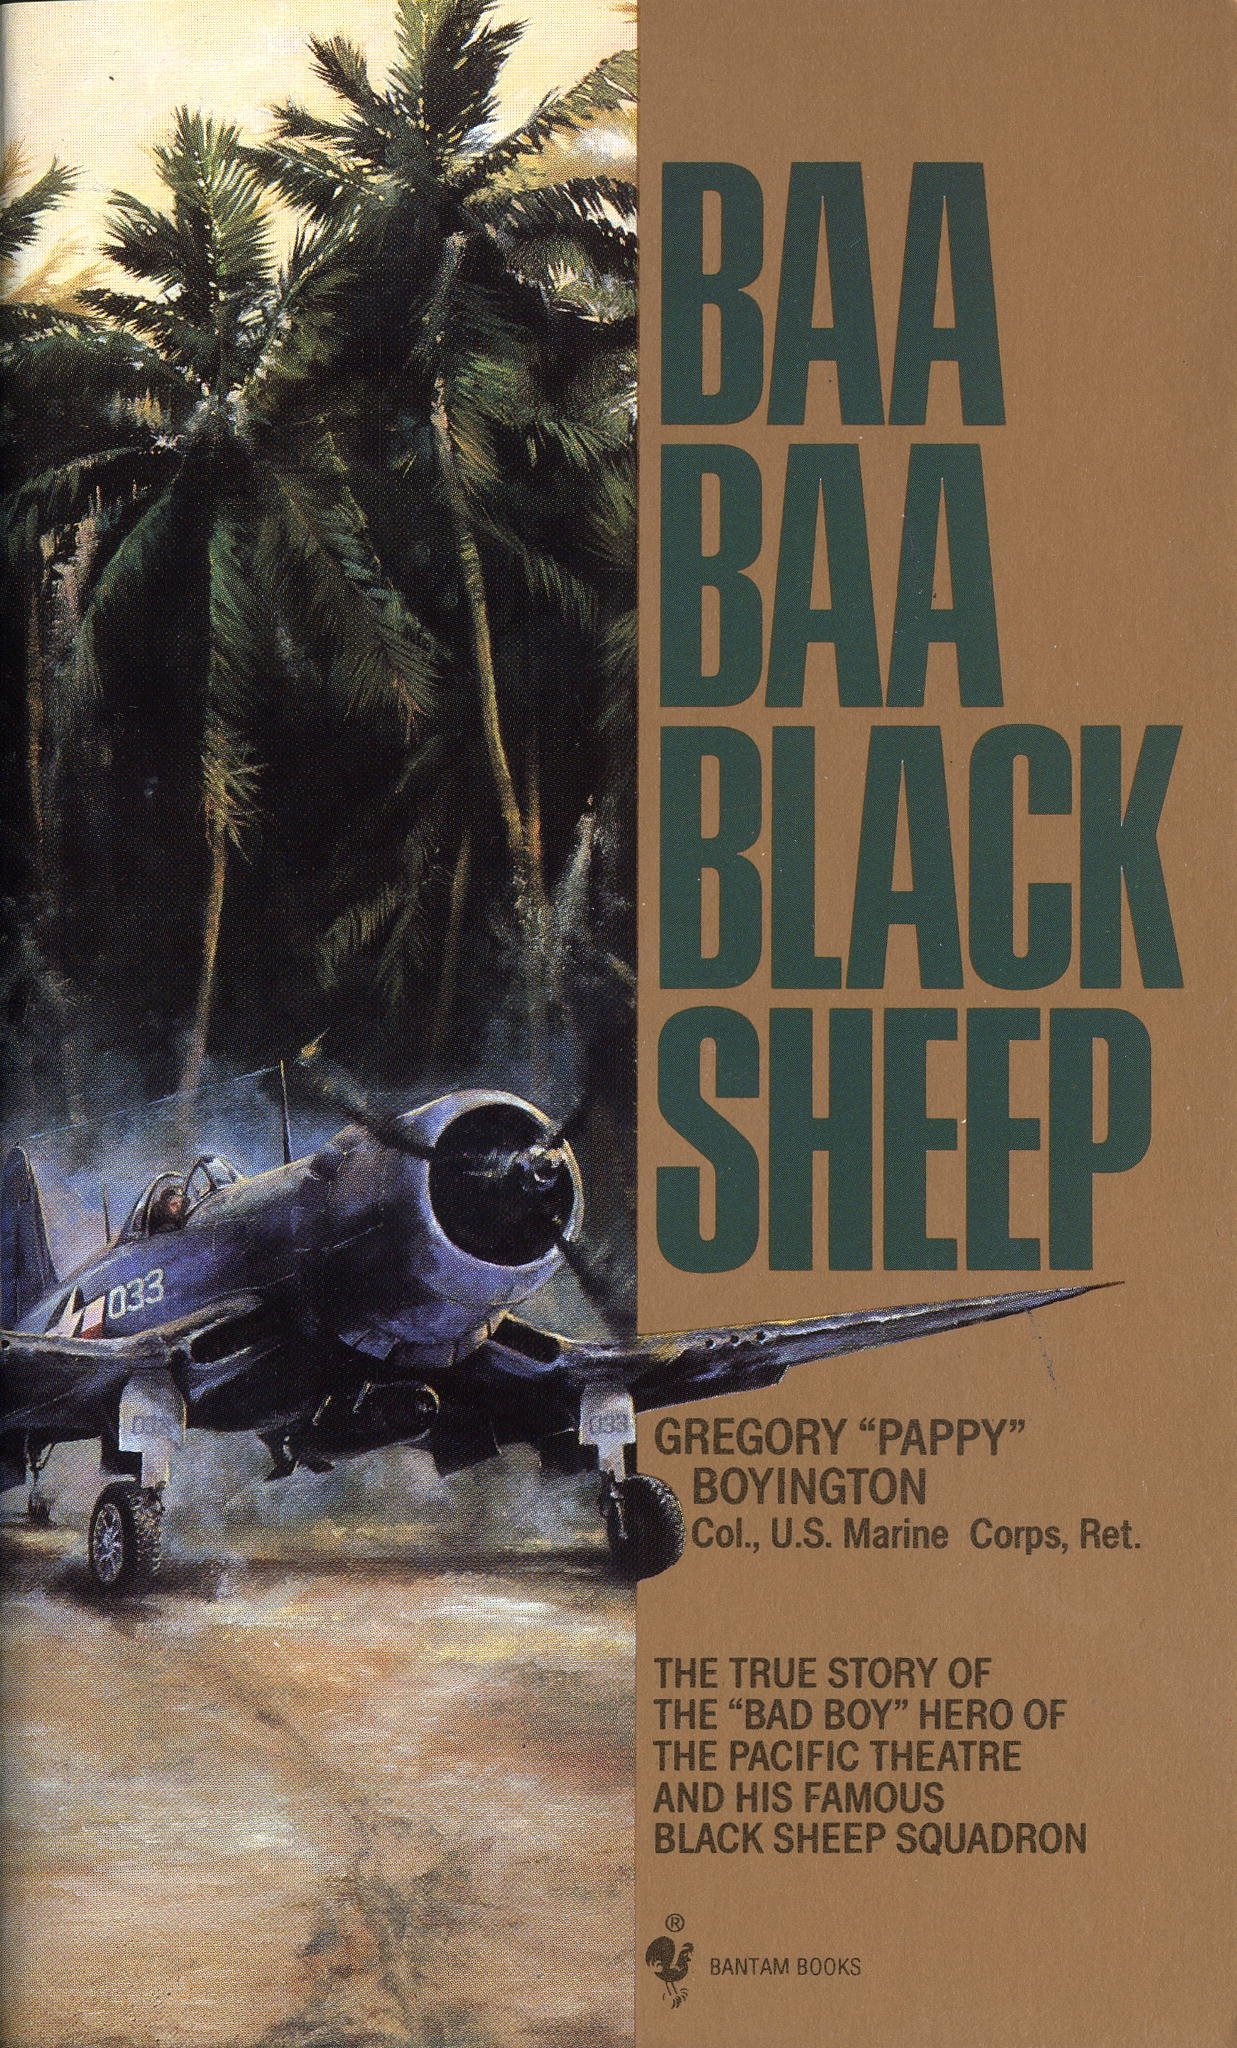 Baa Baa Black Sheep: The True Story of the Bad Boy Hero of the Pacific Theatre and His Famous Black Sheep Squadron